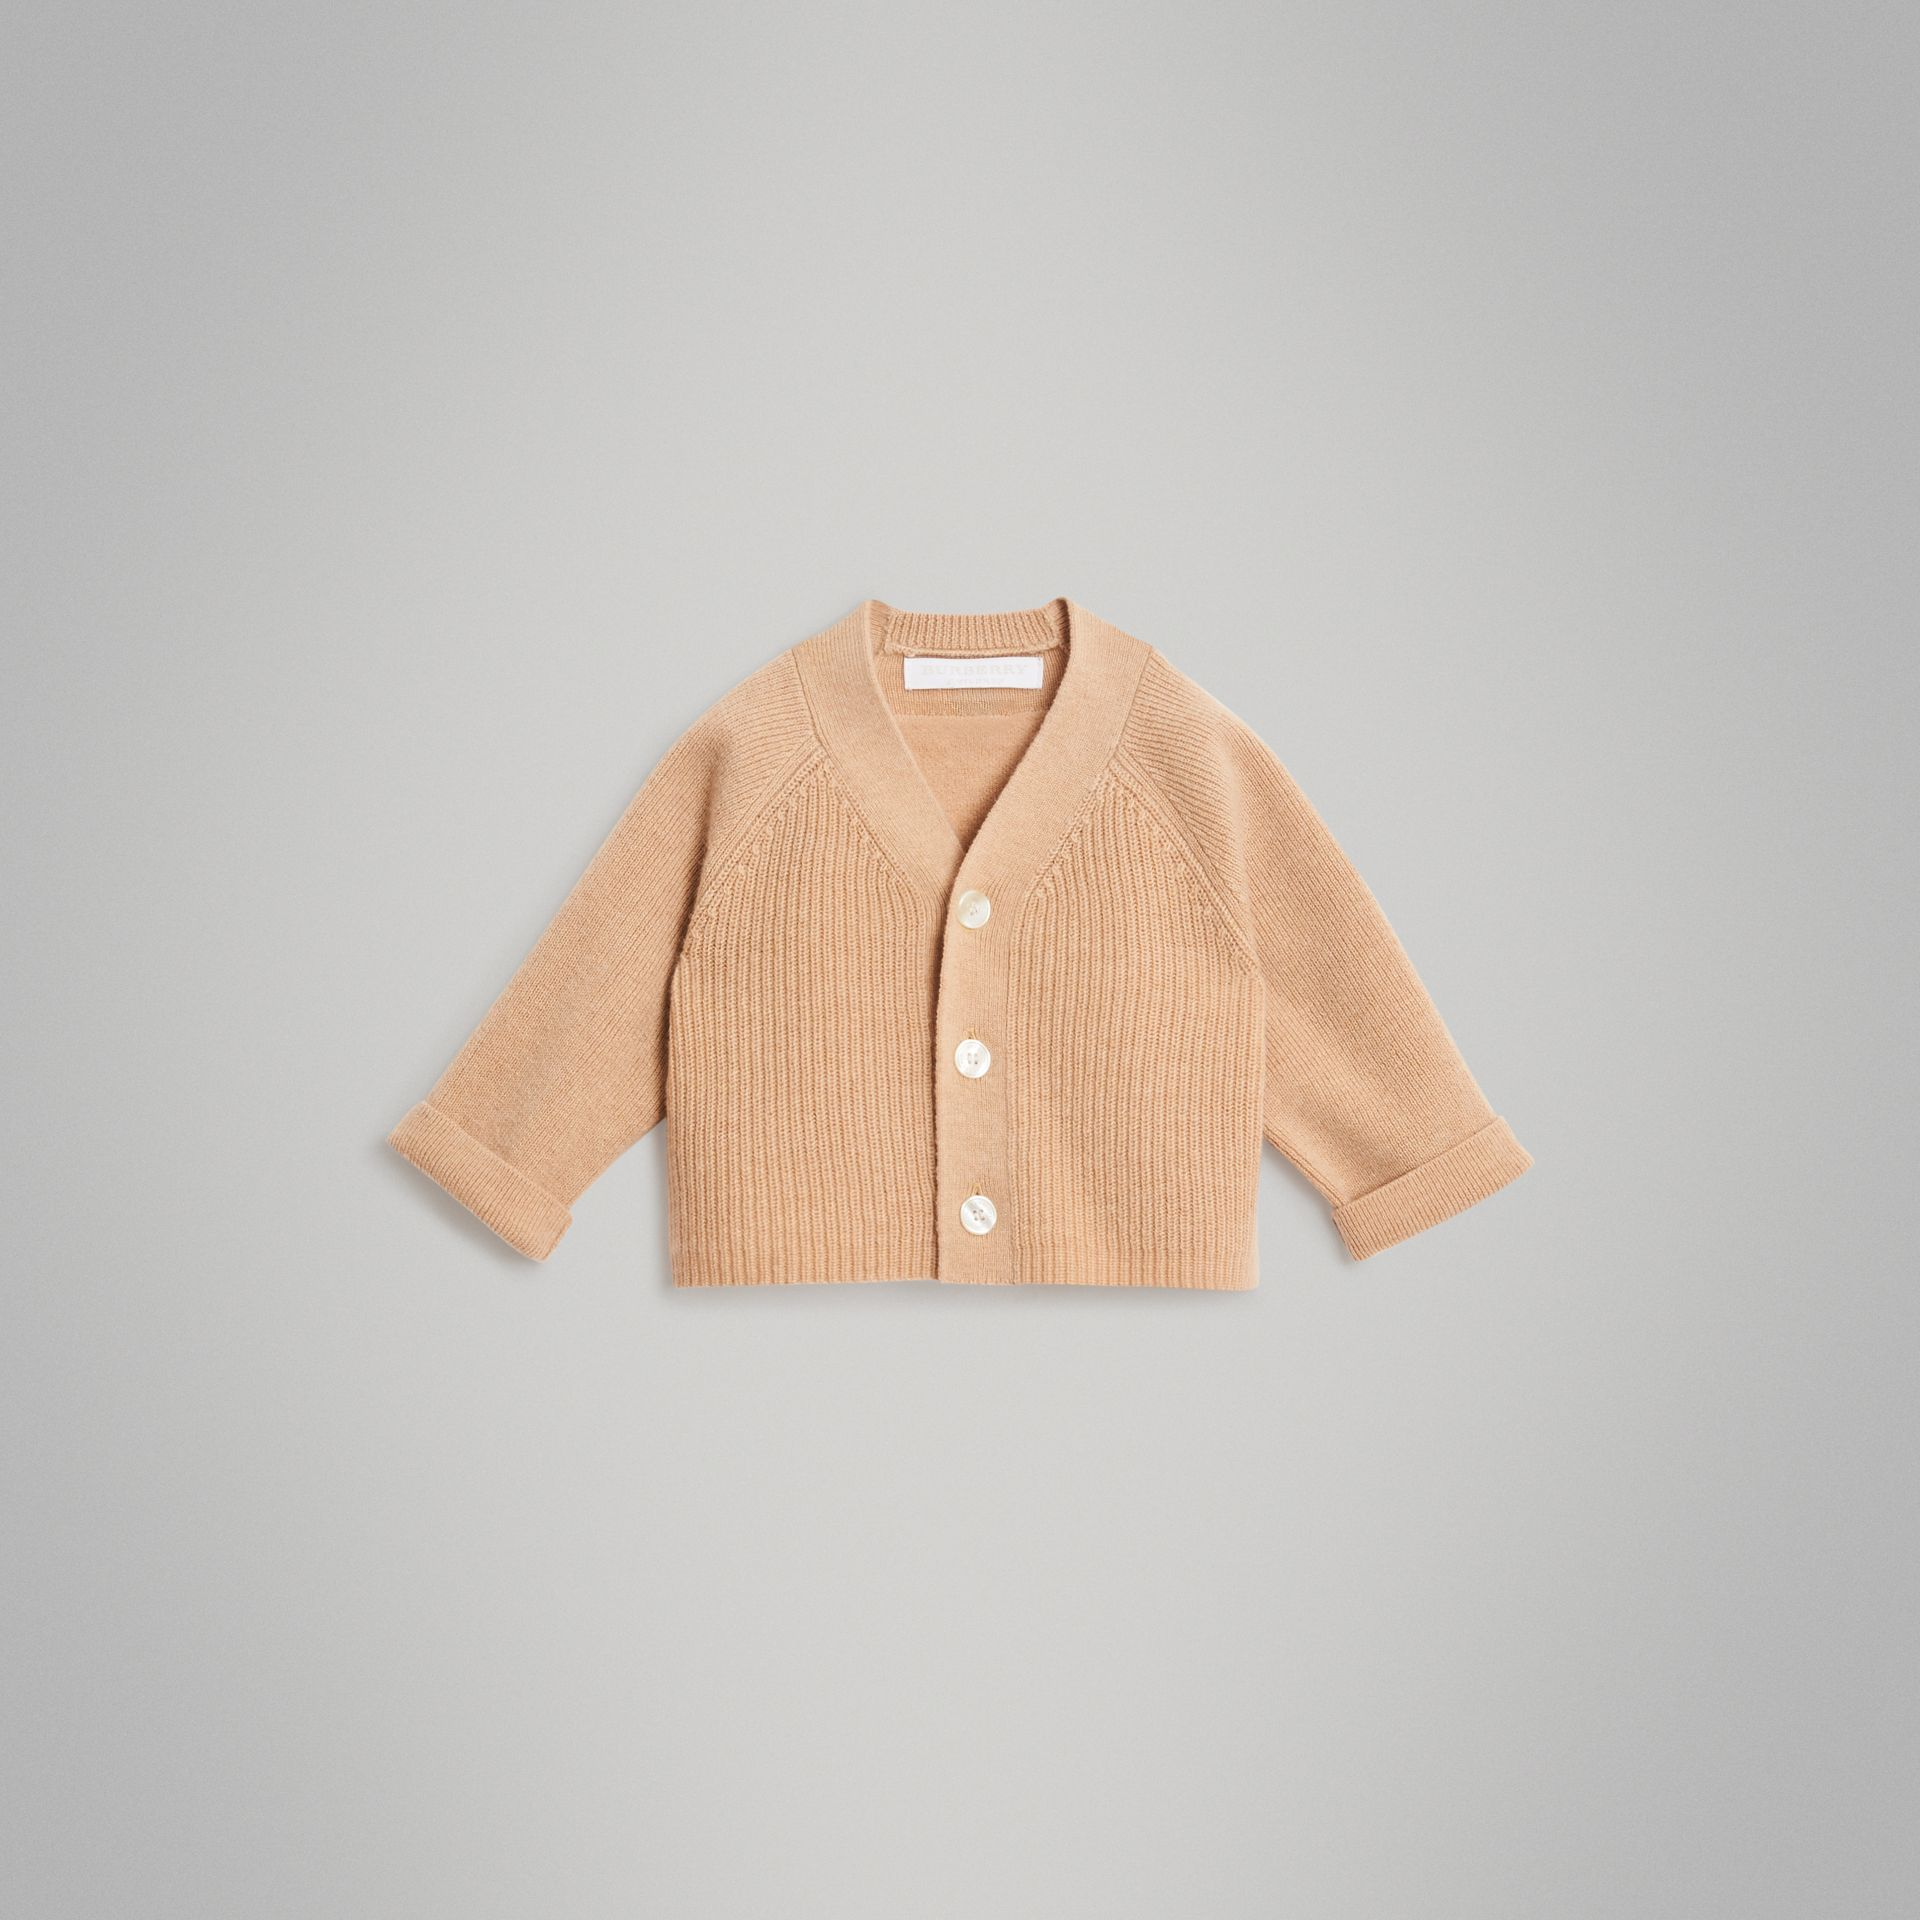 Cashmere Cotton Knit Cardigan in Peach - Children | Burberry United Kingdom - gallery image 0